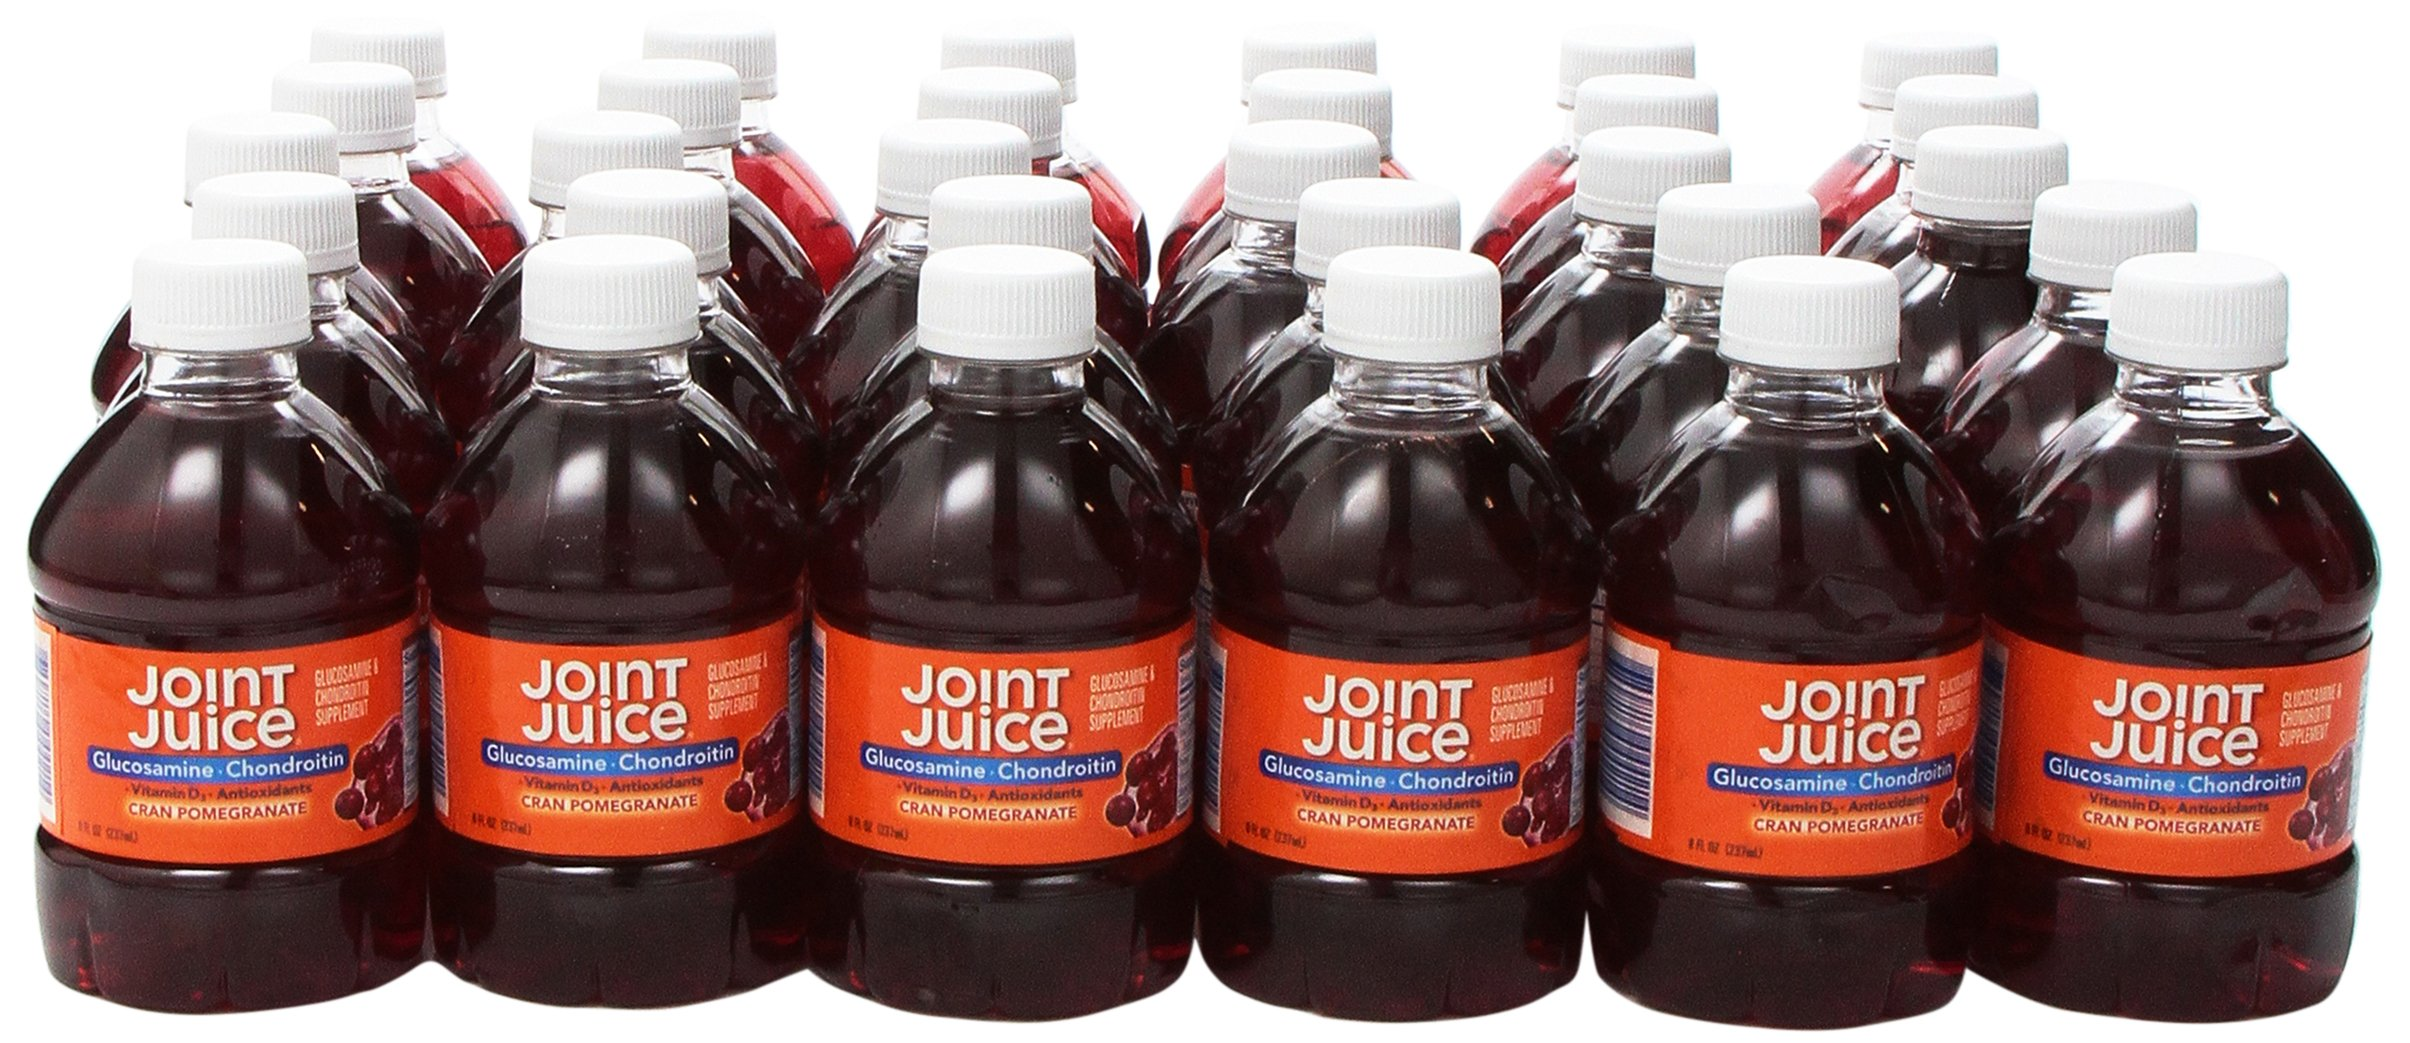 Joint Juice Glucosamine and Chondroitin  Supplement Drink   Cranberry Pomegranate   8-Ounce  30-Count